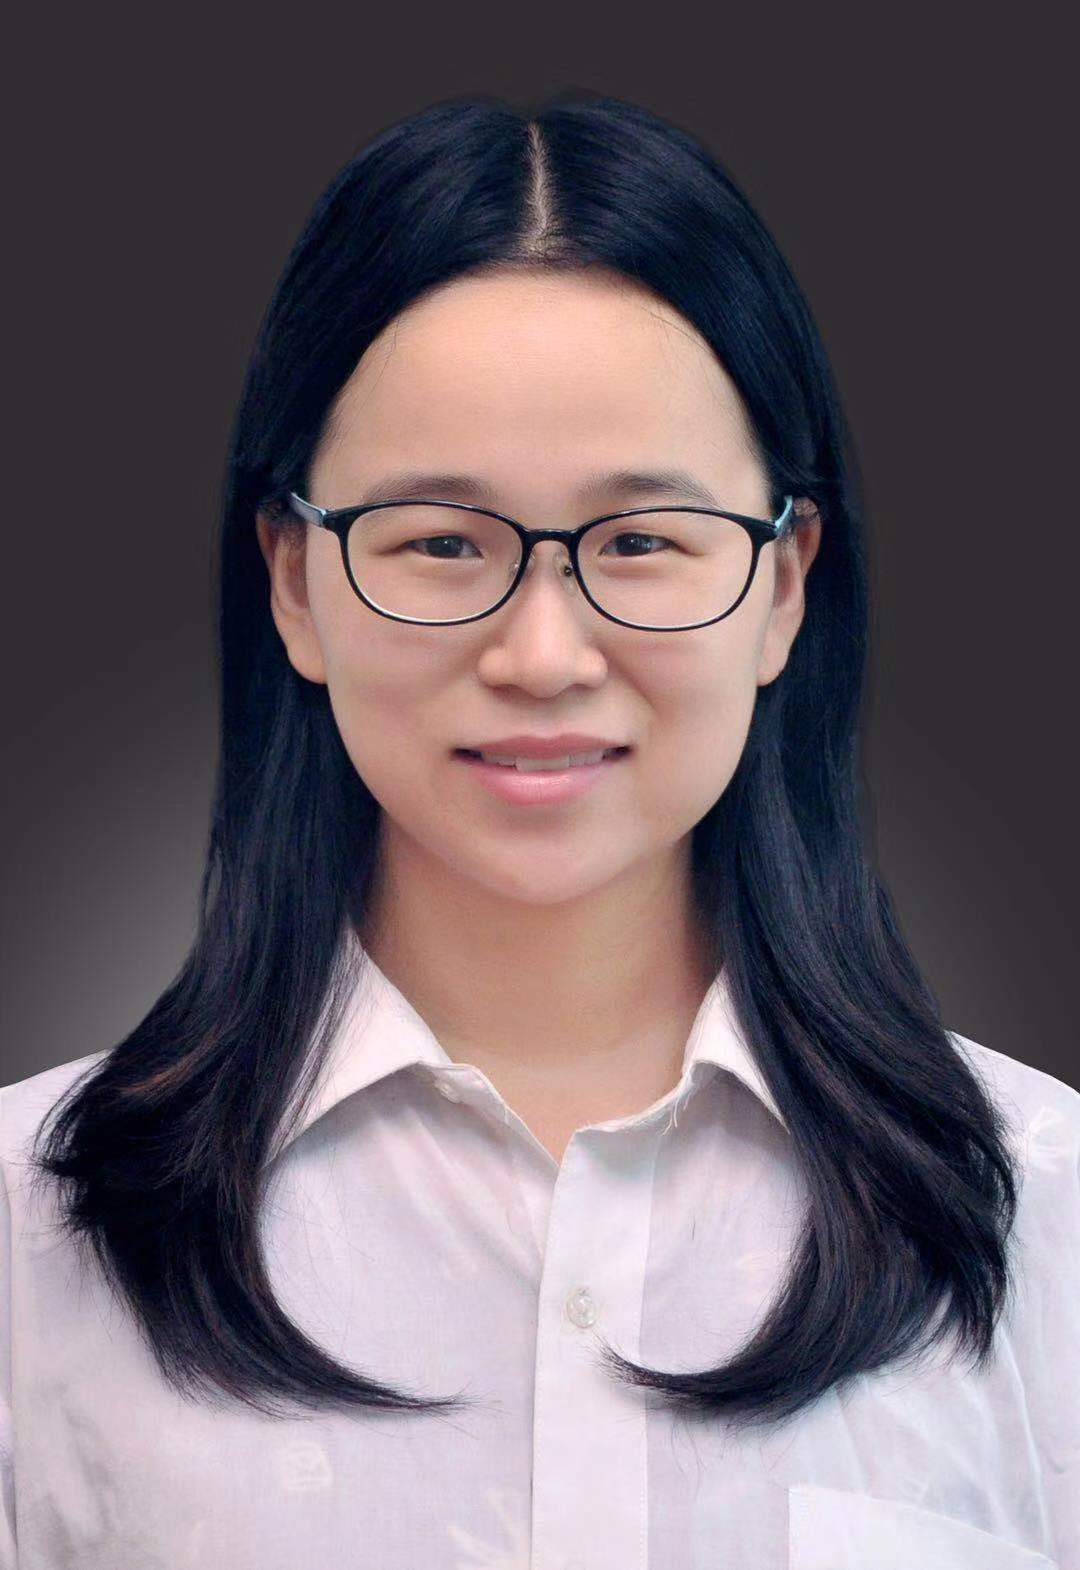 Dr. Shuang Song